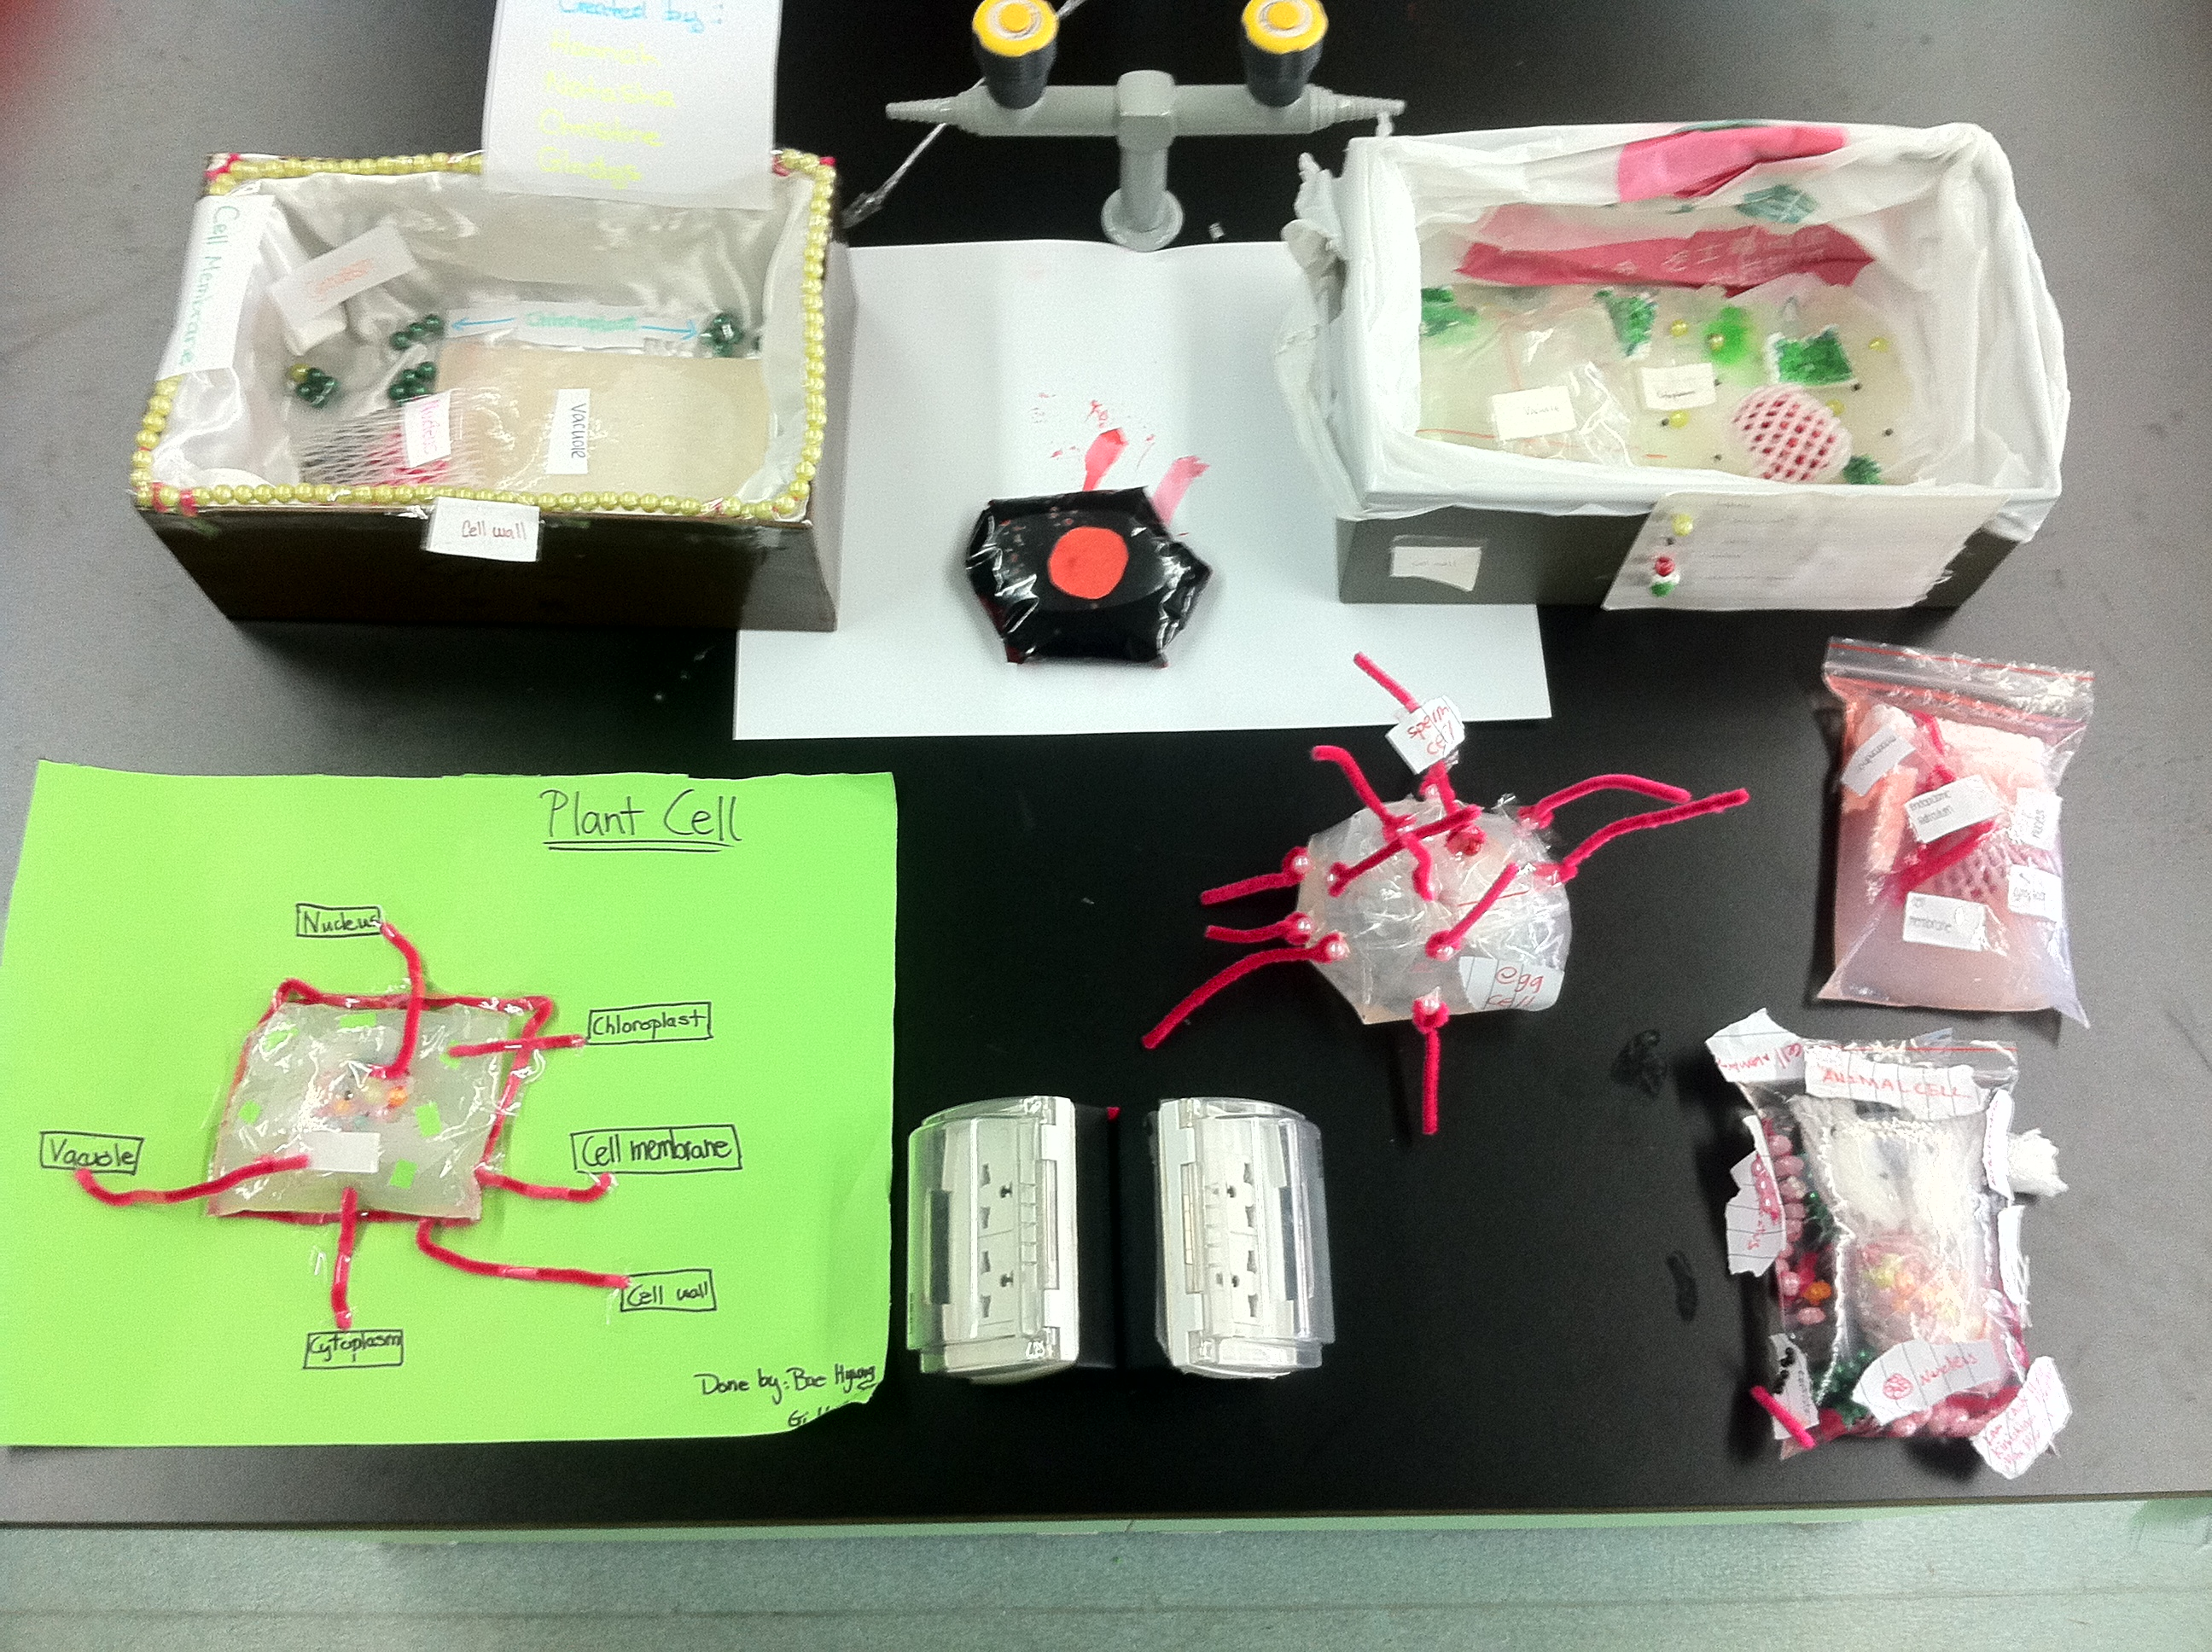 Mr Gaynors Class Cells 3d Animal Cell Diagram Success Grade 8 Plant S1 Pearls Amazing Models